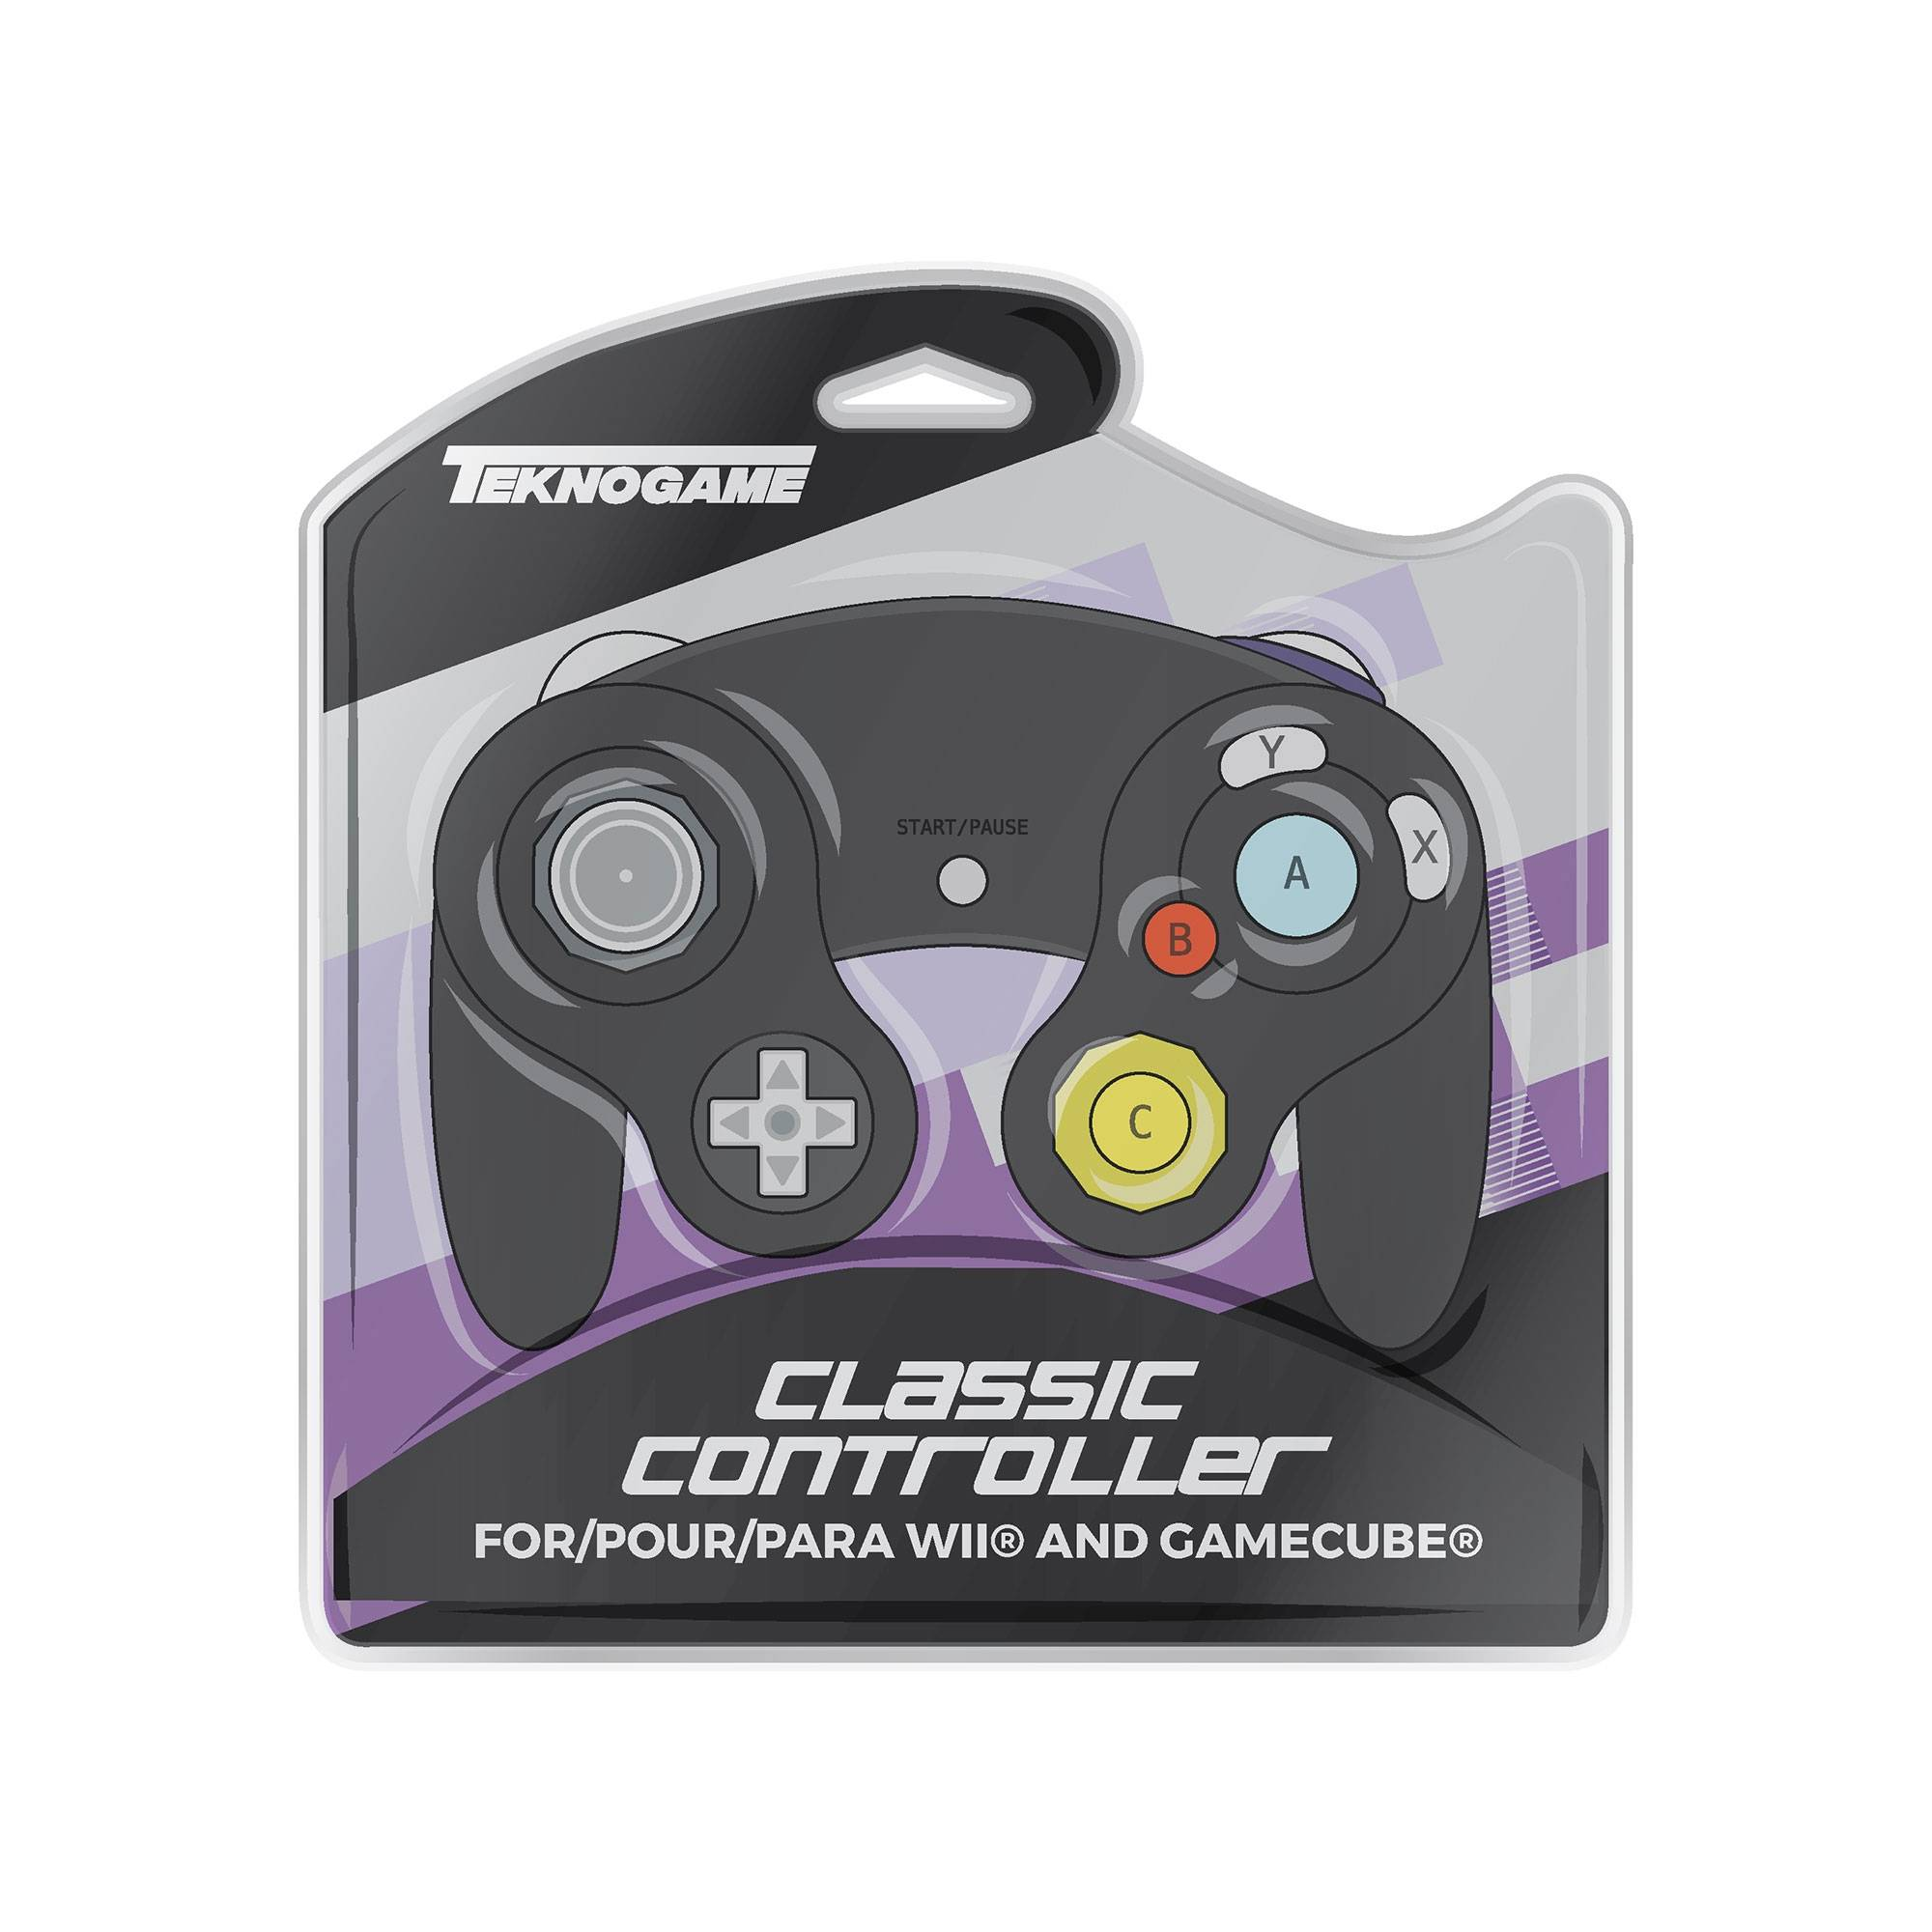 Gamecube kontroller för Gamecube, Wii, Wii U, Switch - Svart